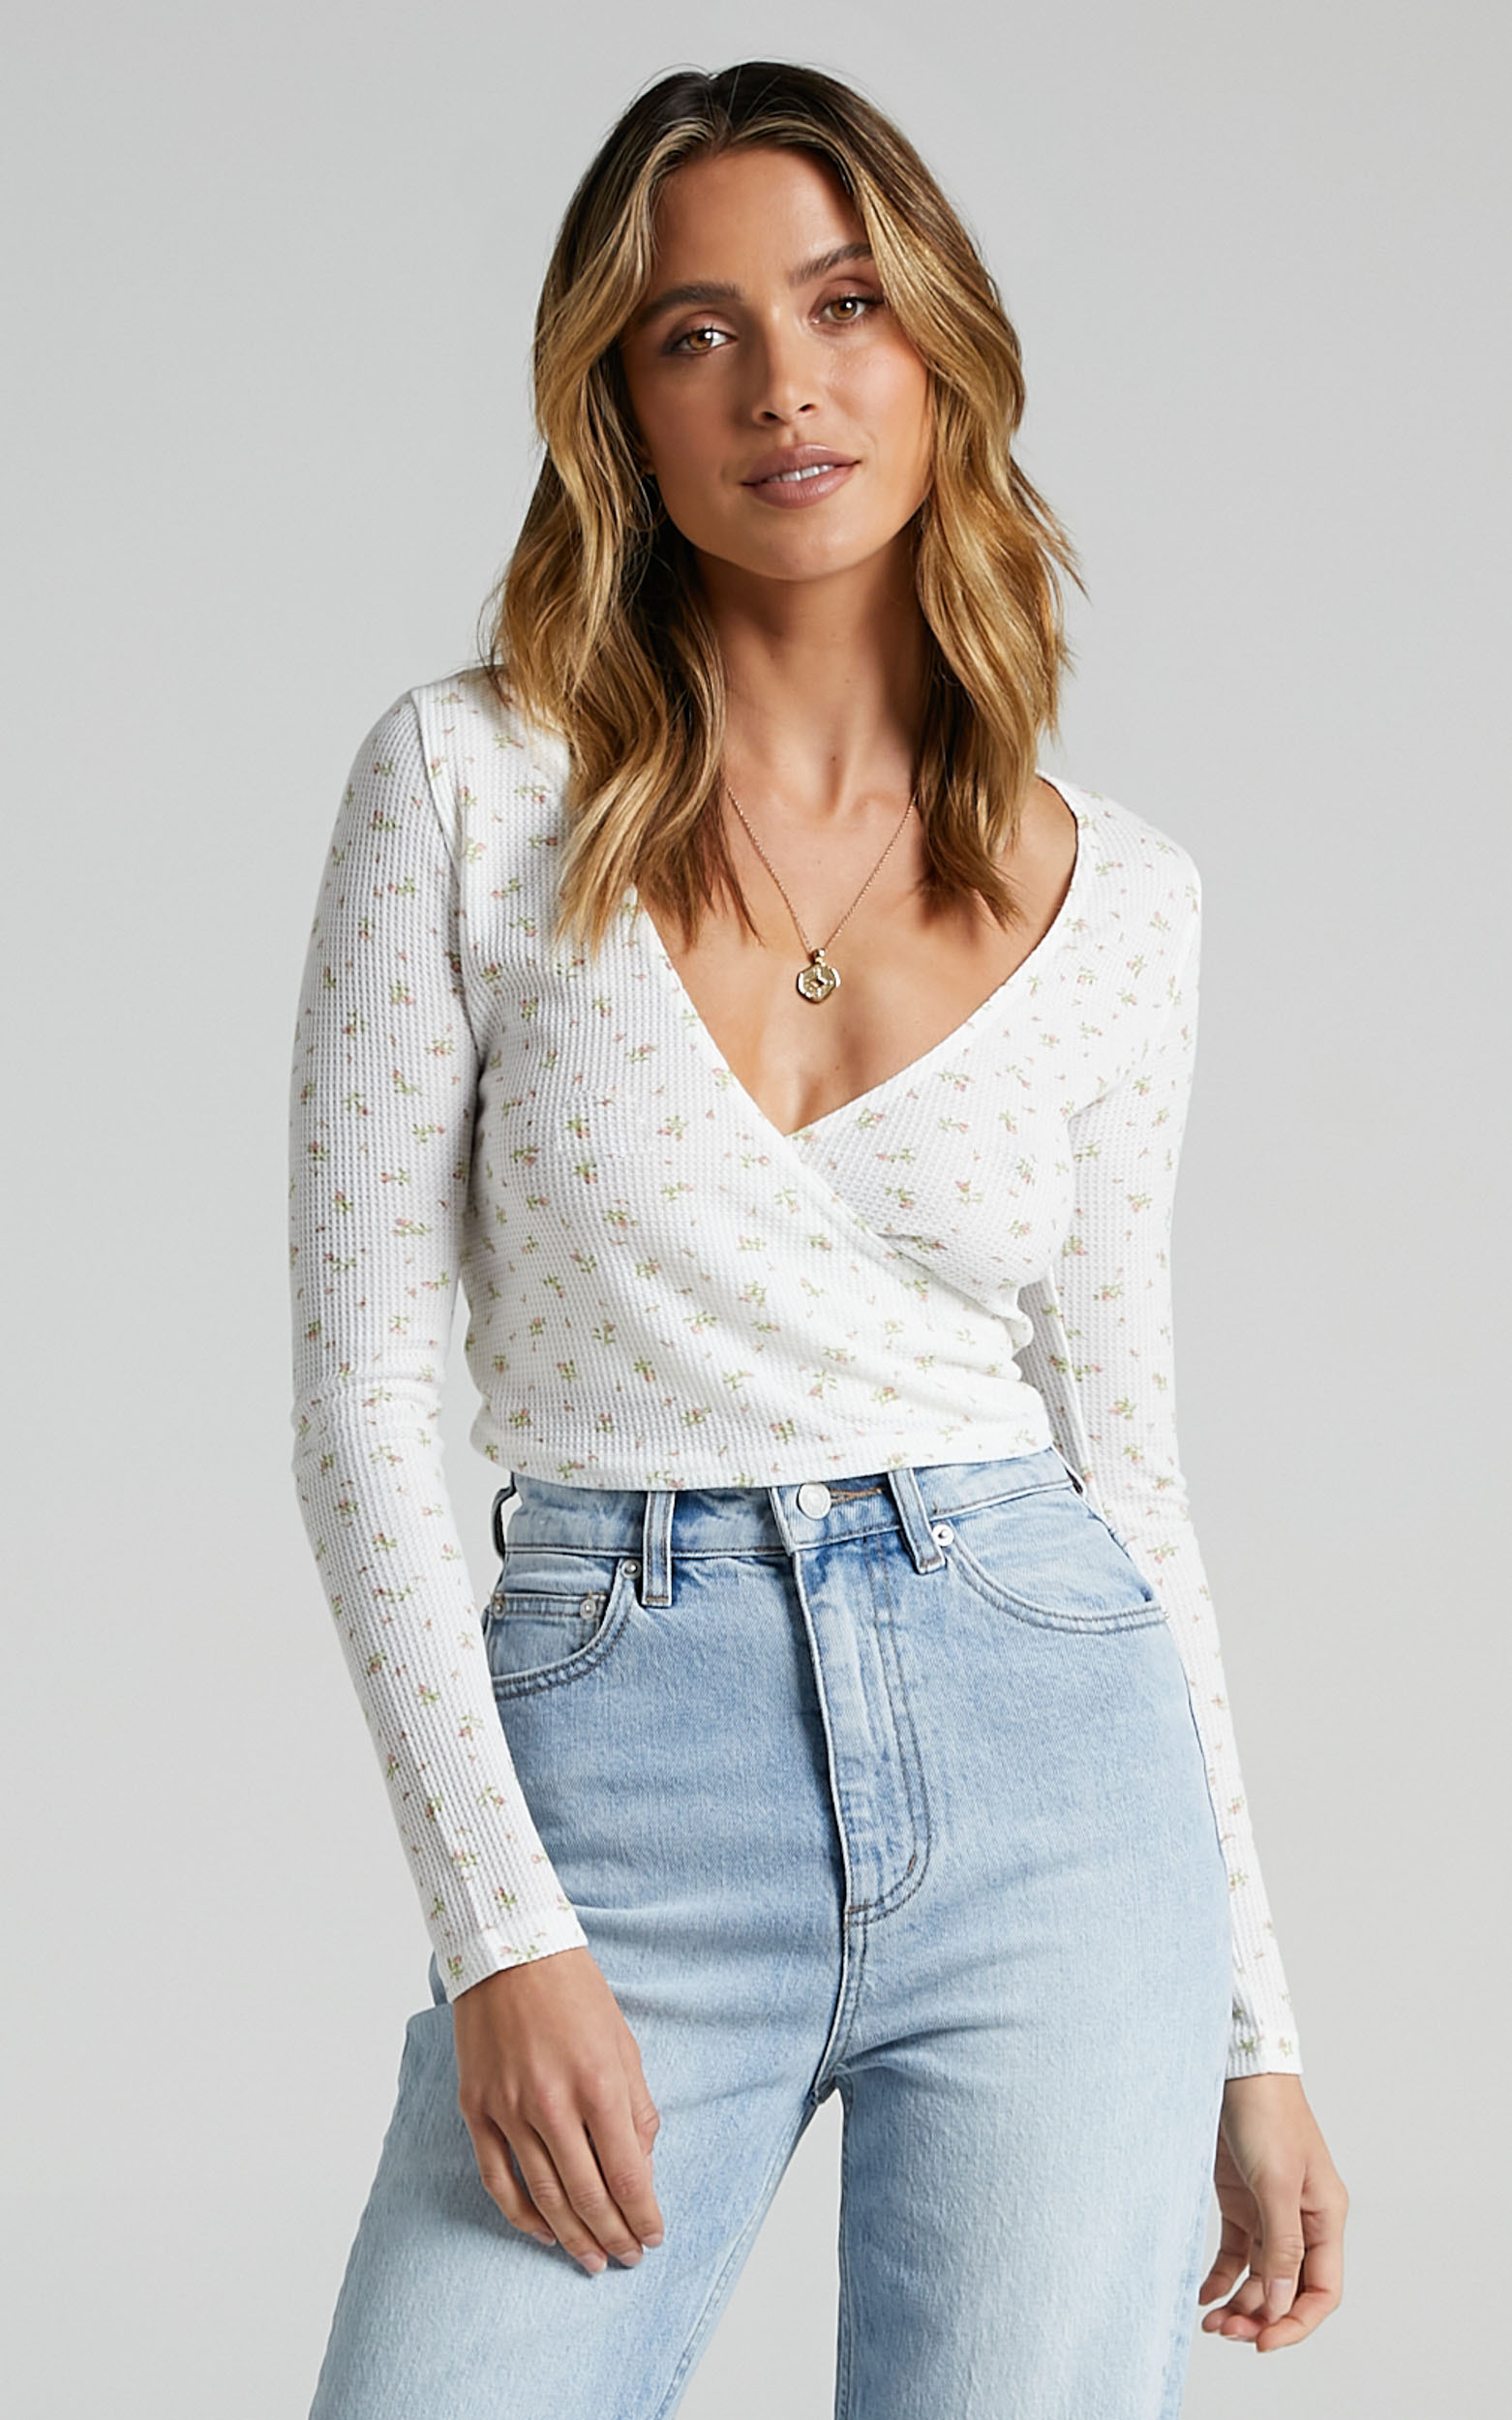 Piea Top in White Floral - 08, WHT1, hi-res image number null